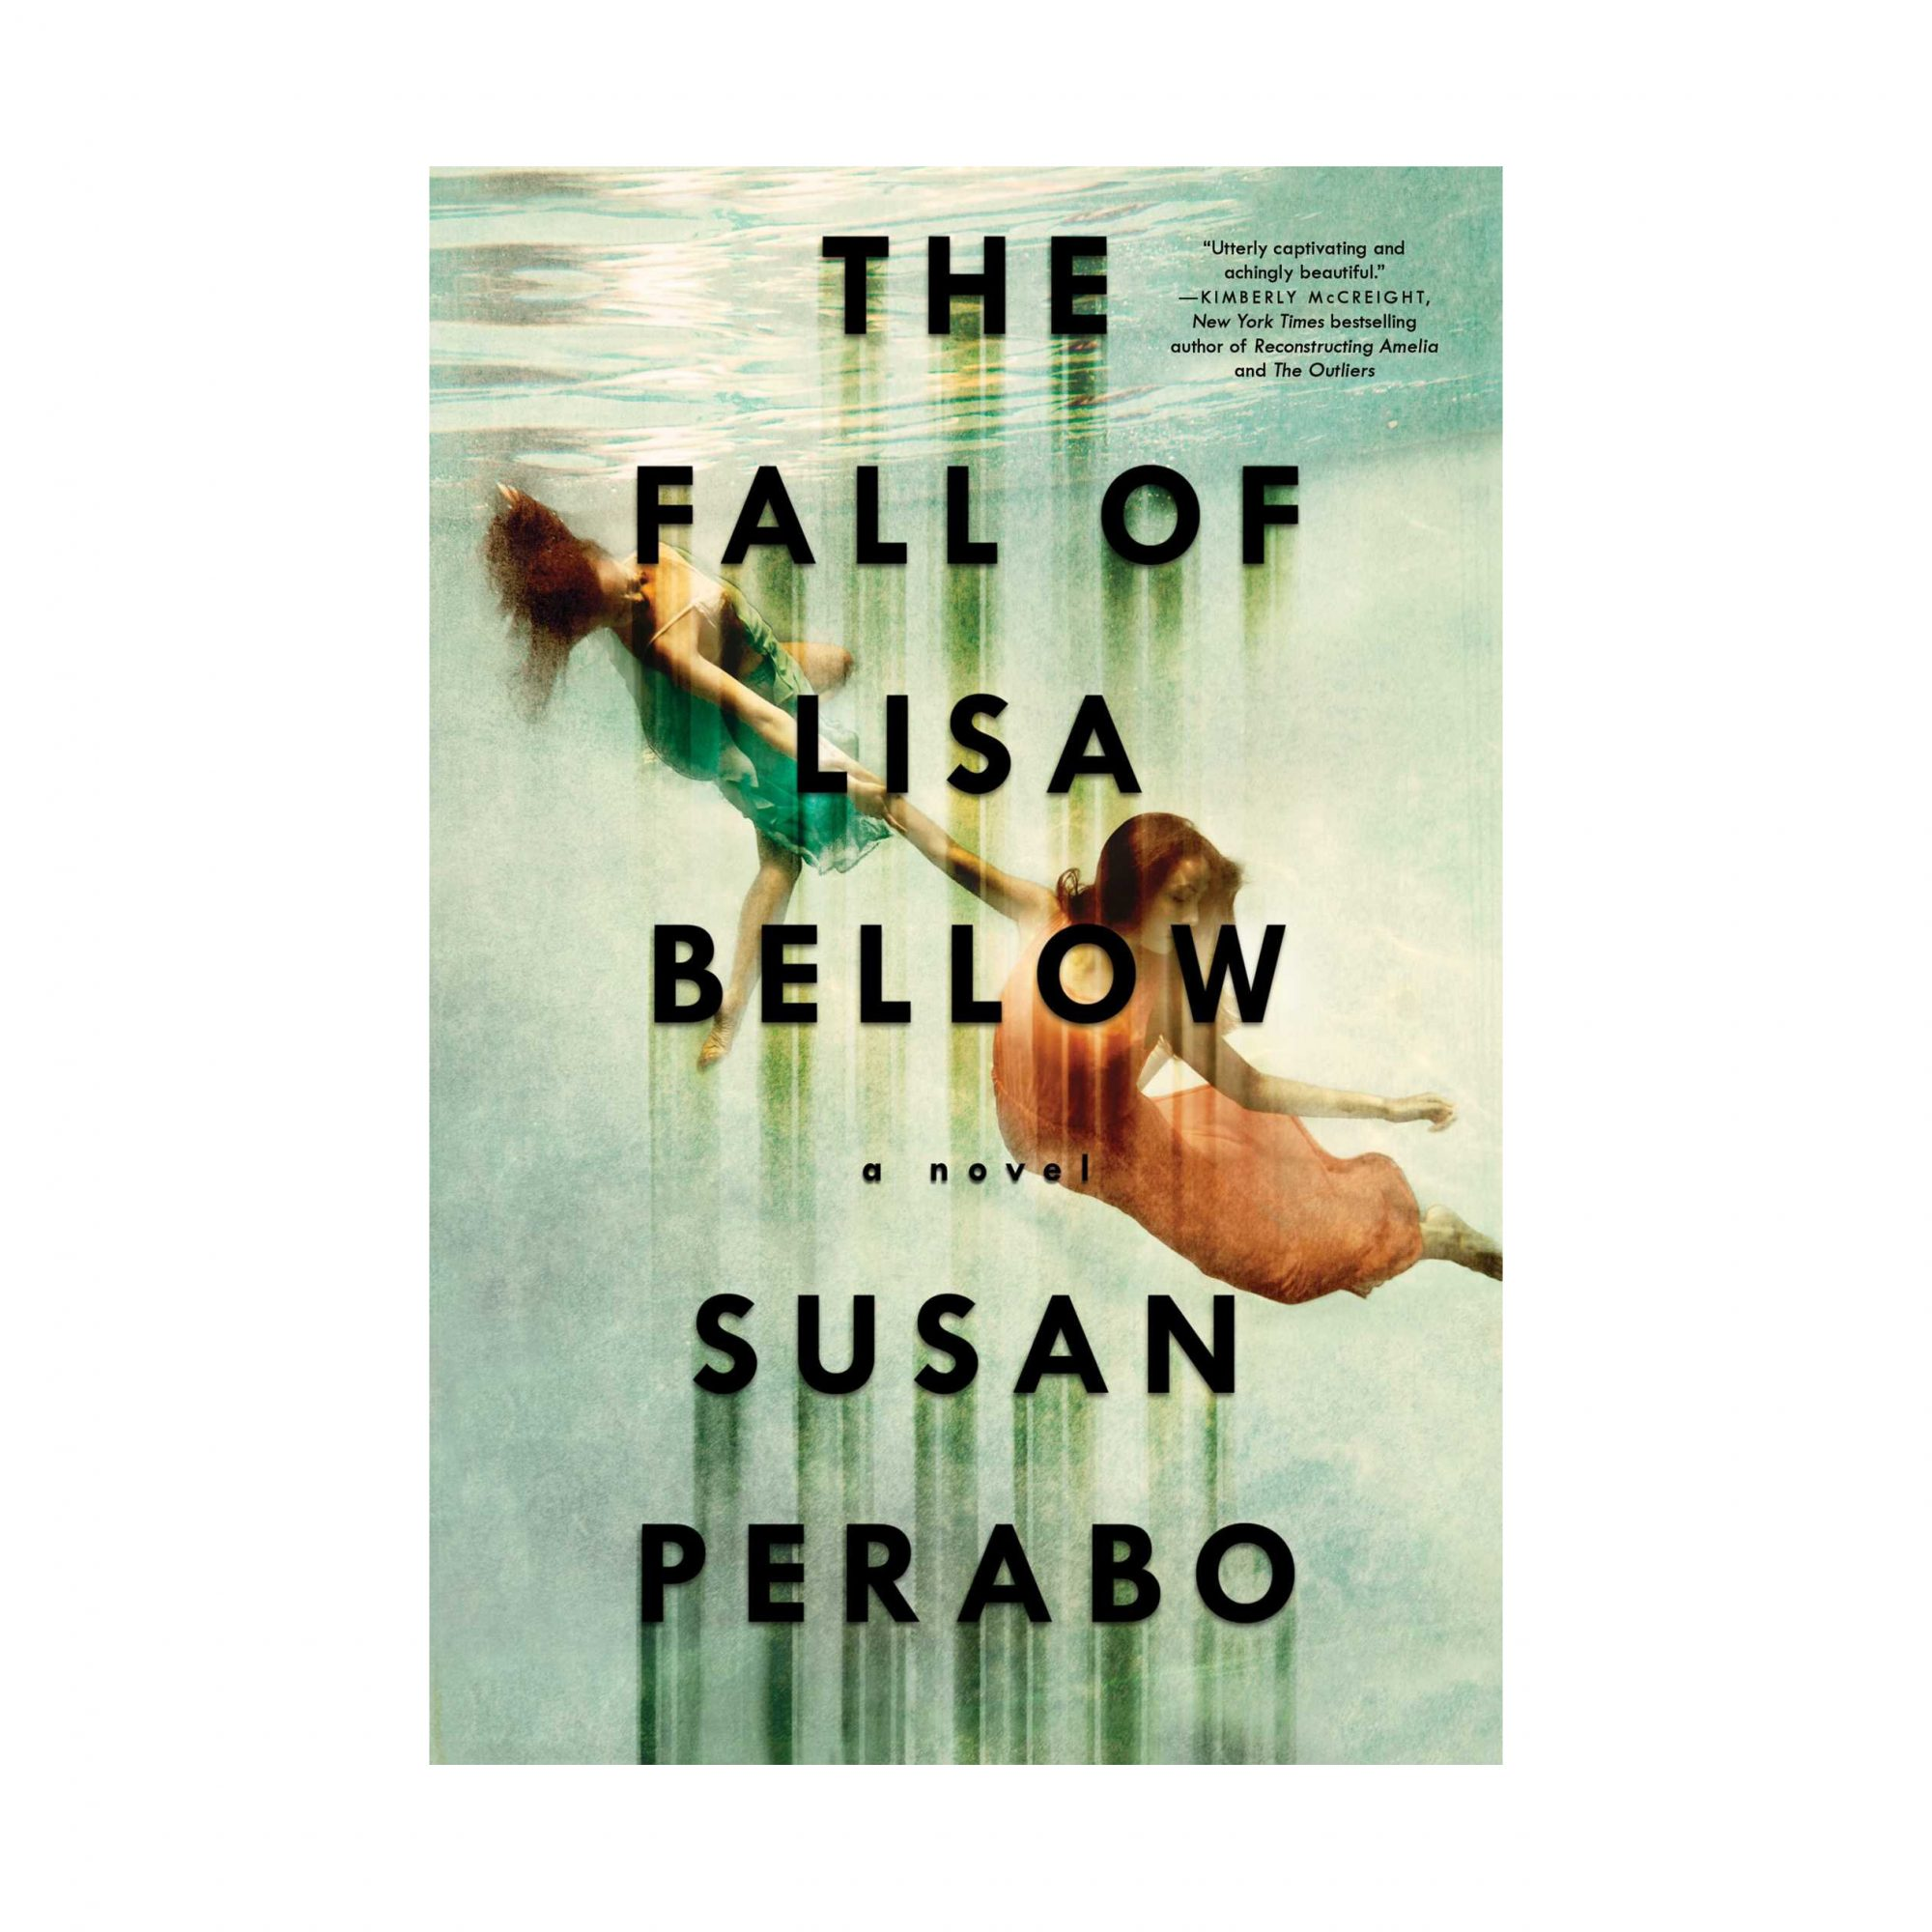 The Fall of Lisa Bellow by Susan Perabo